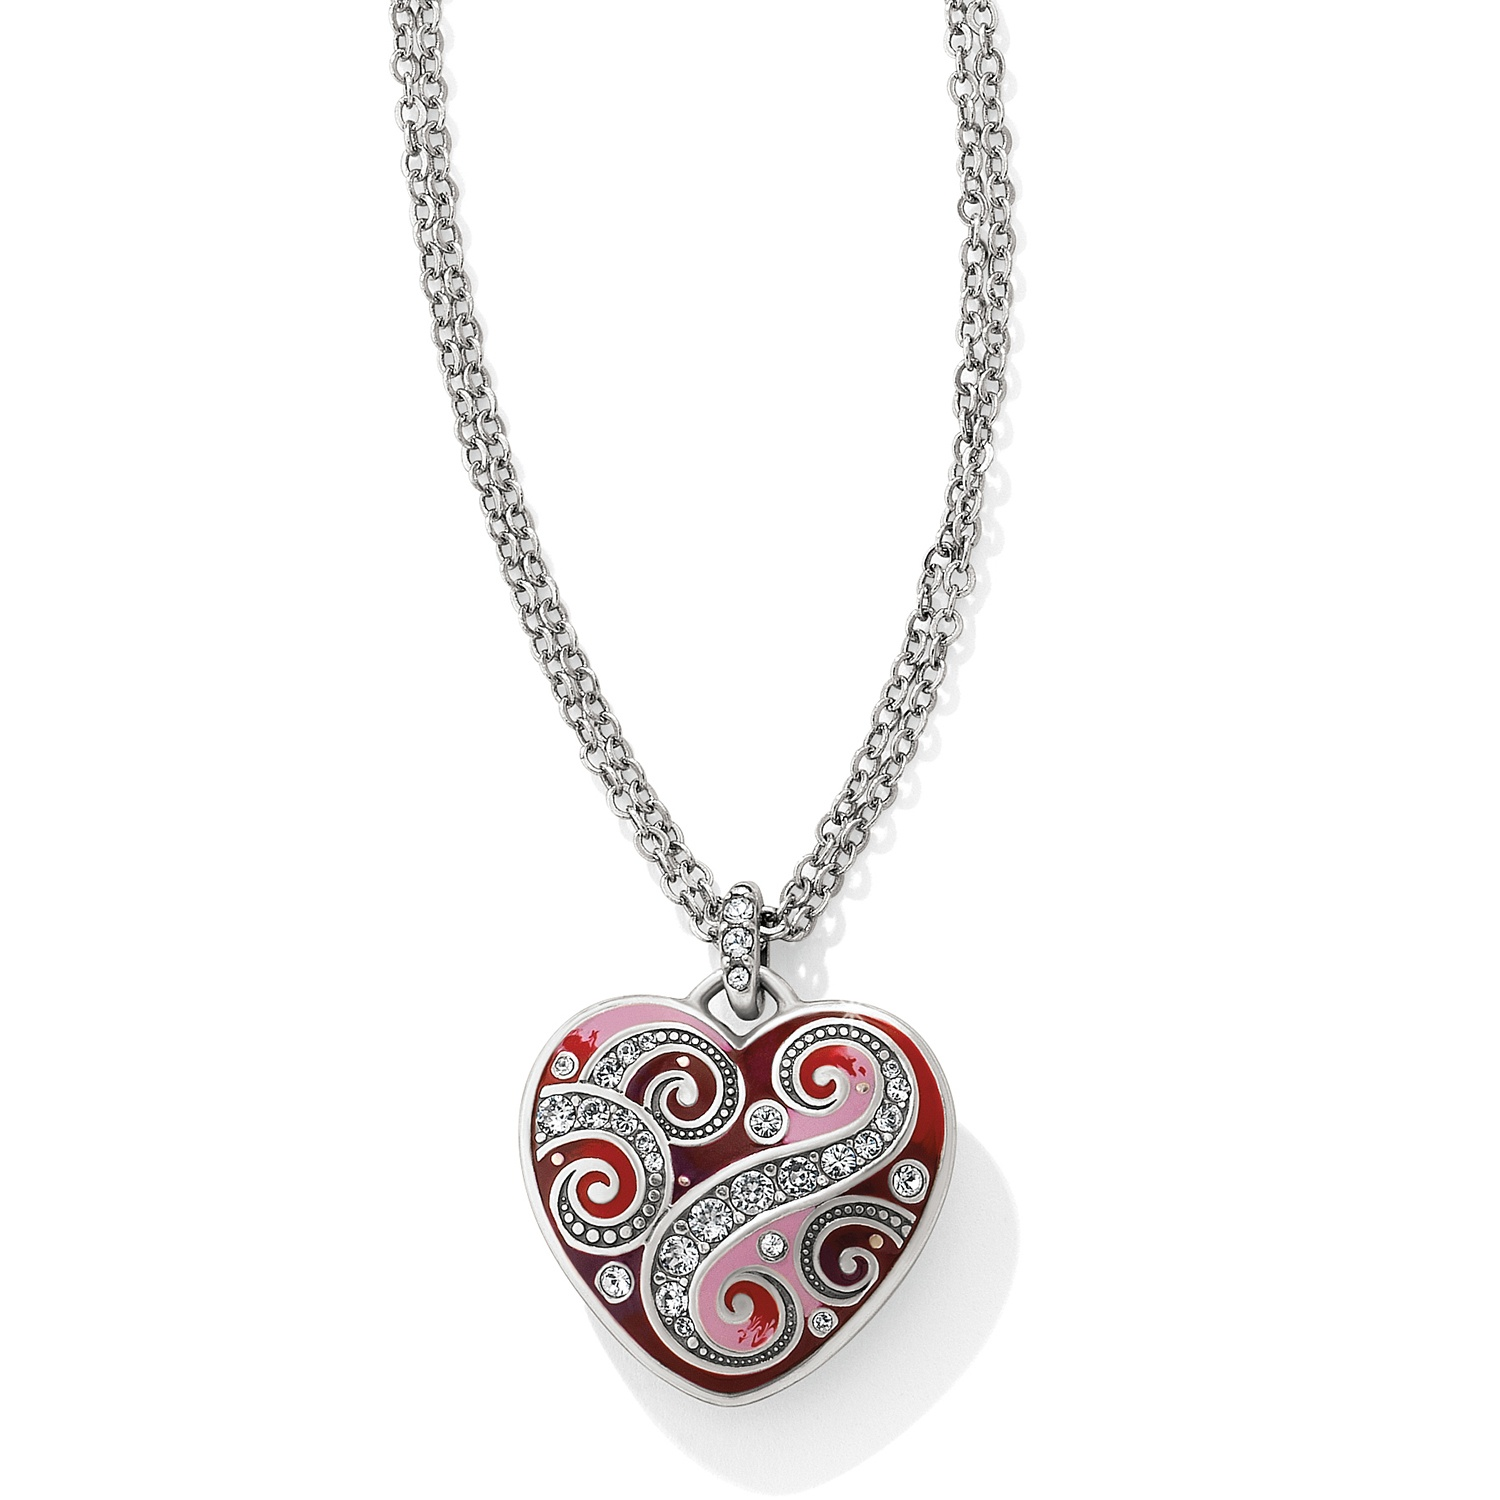 duo bonas oliver jewelry heart jewellery gold silver and necklace